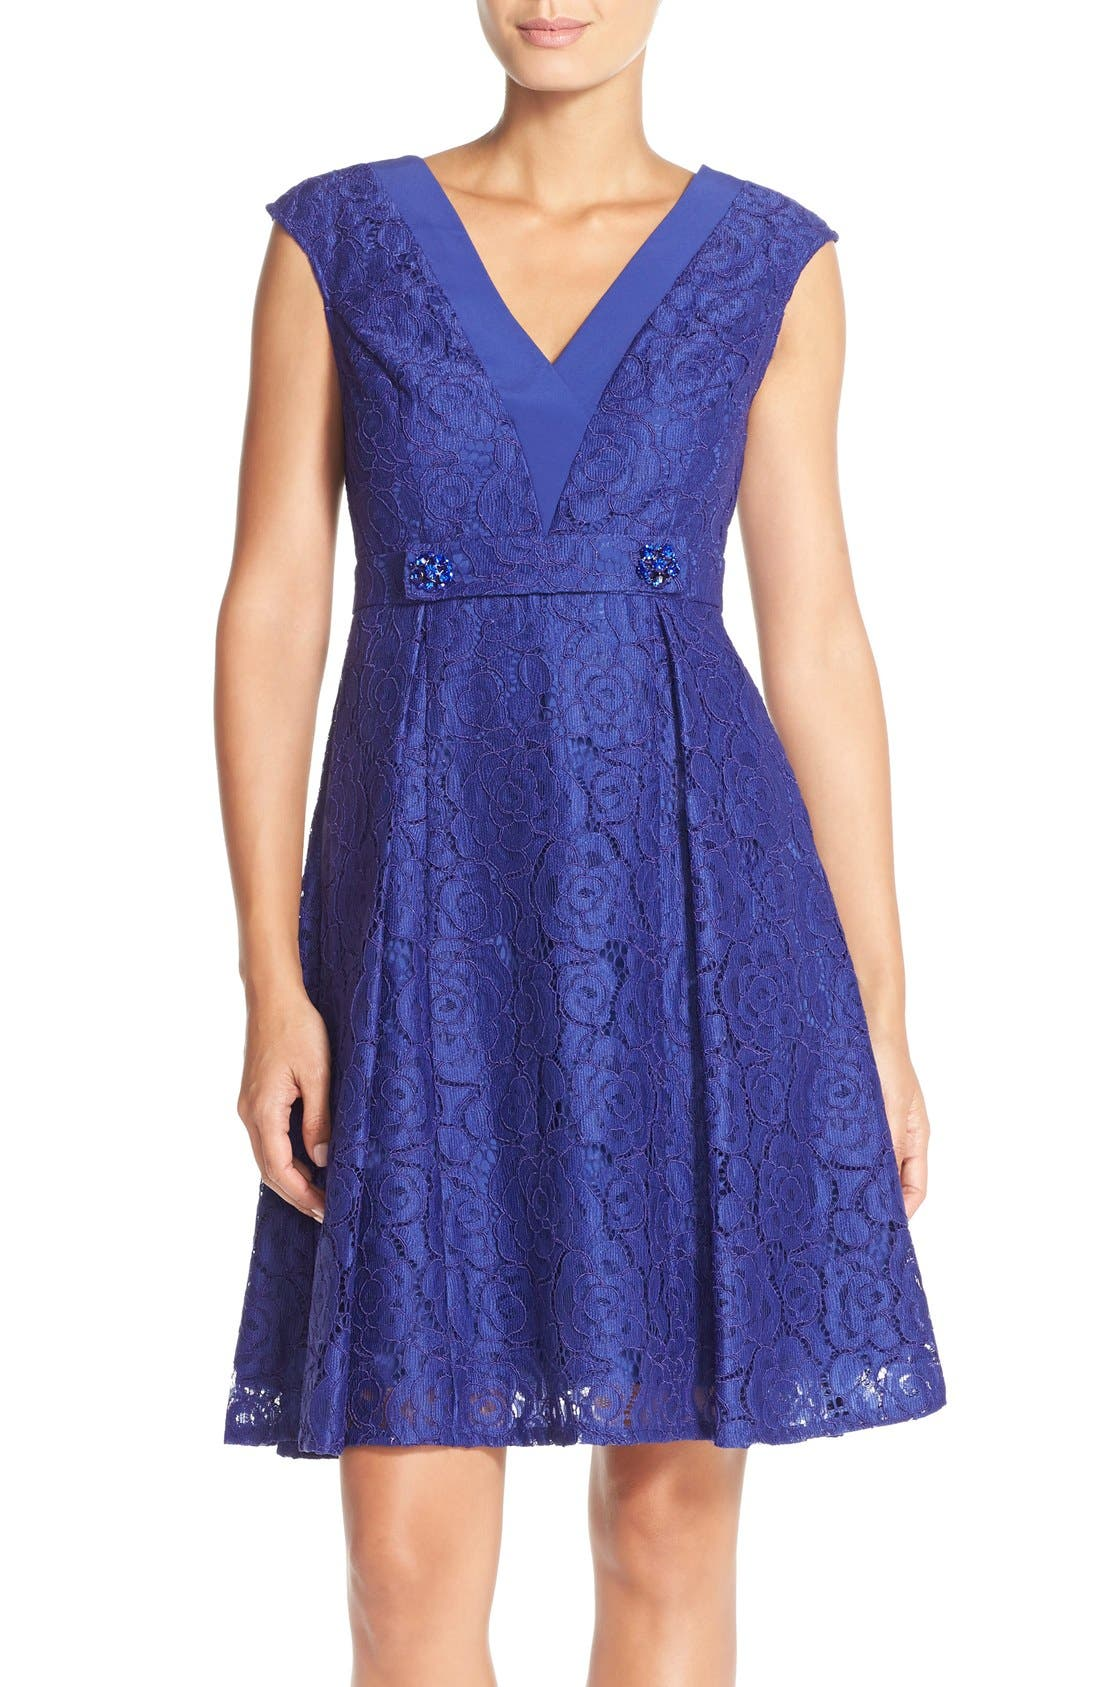 Alternate Image 1 Selected - Adrianna PapellEmbellished Lace Fit & Flare Dress